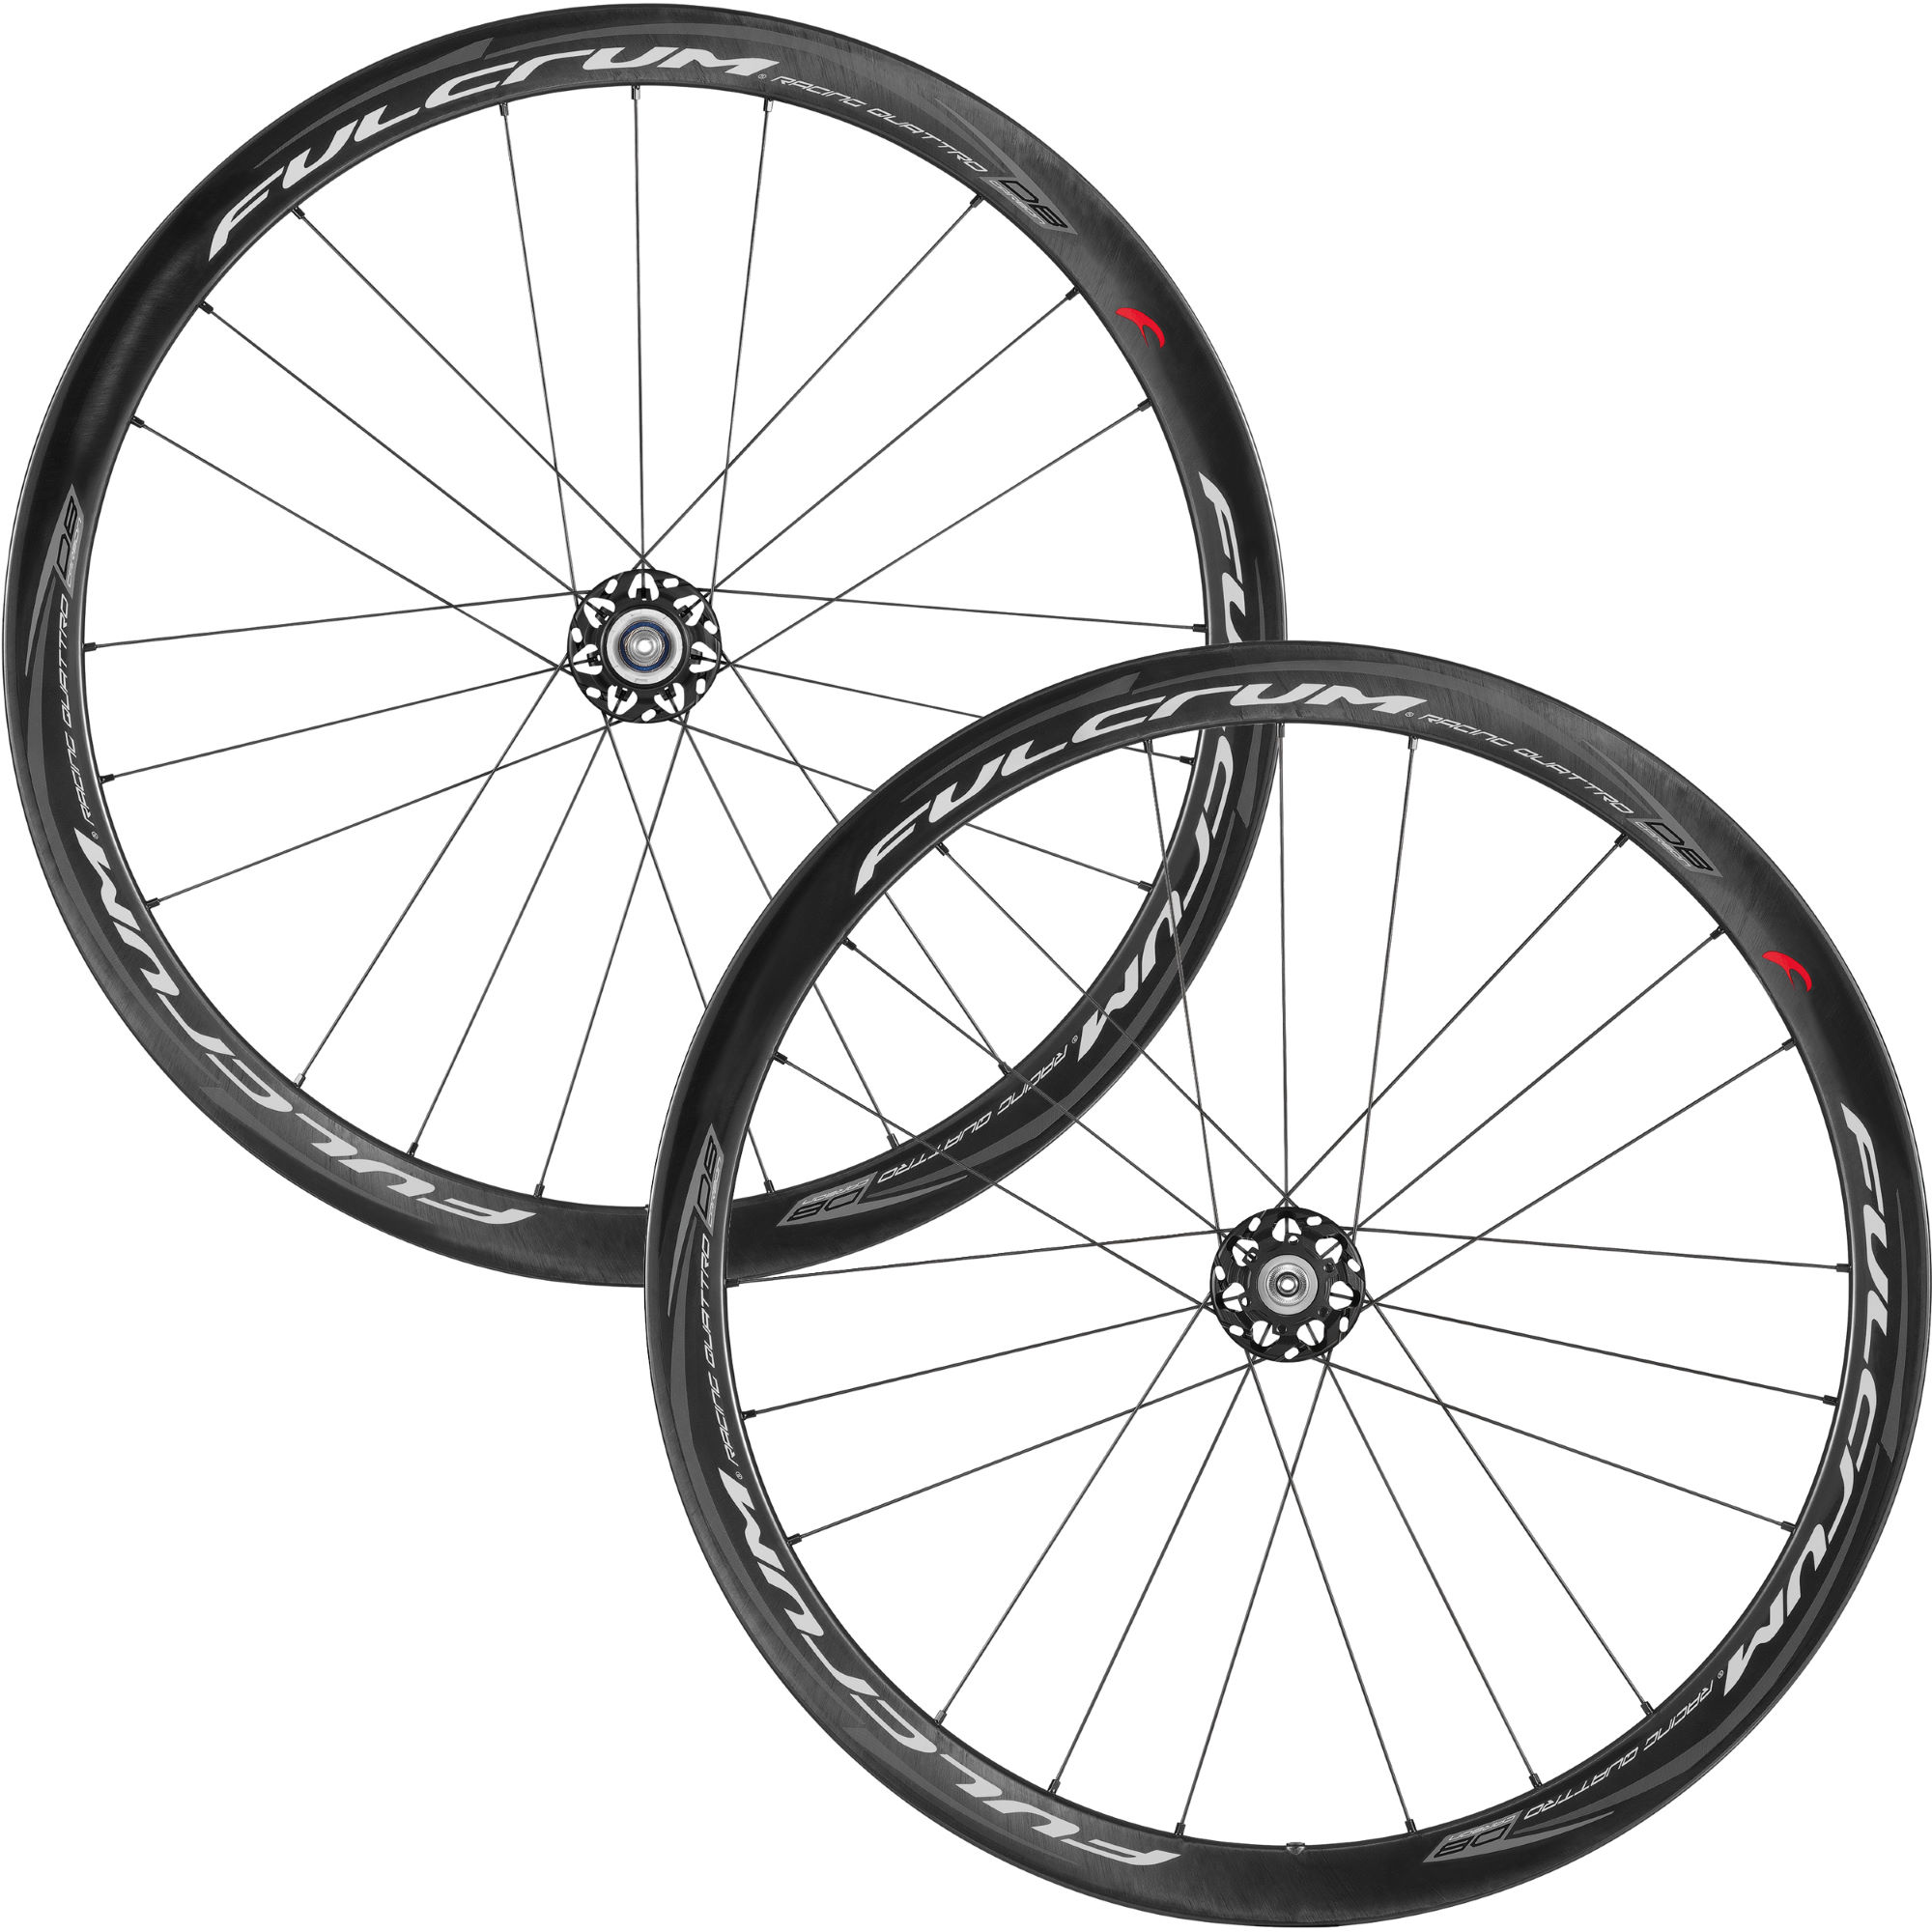 Wiggle Bike Wheels Rb Disc Lite 5 Fulcrum Racing Quattro Db Carbon Clincher Wheelset